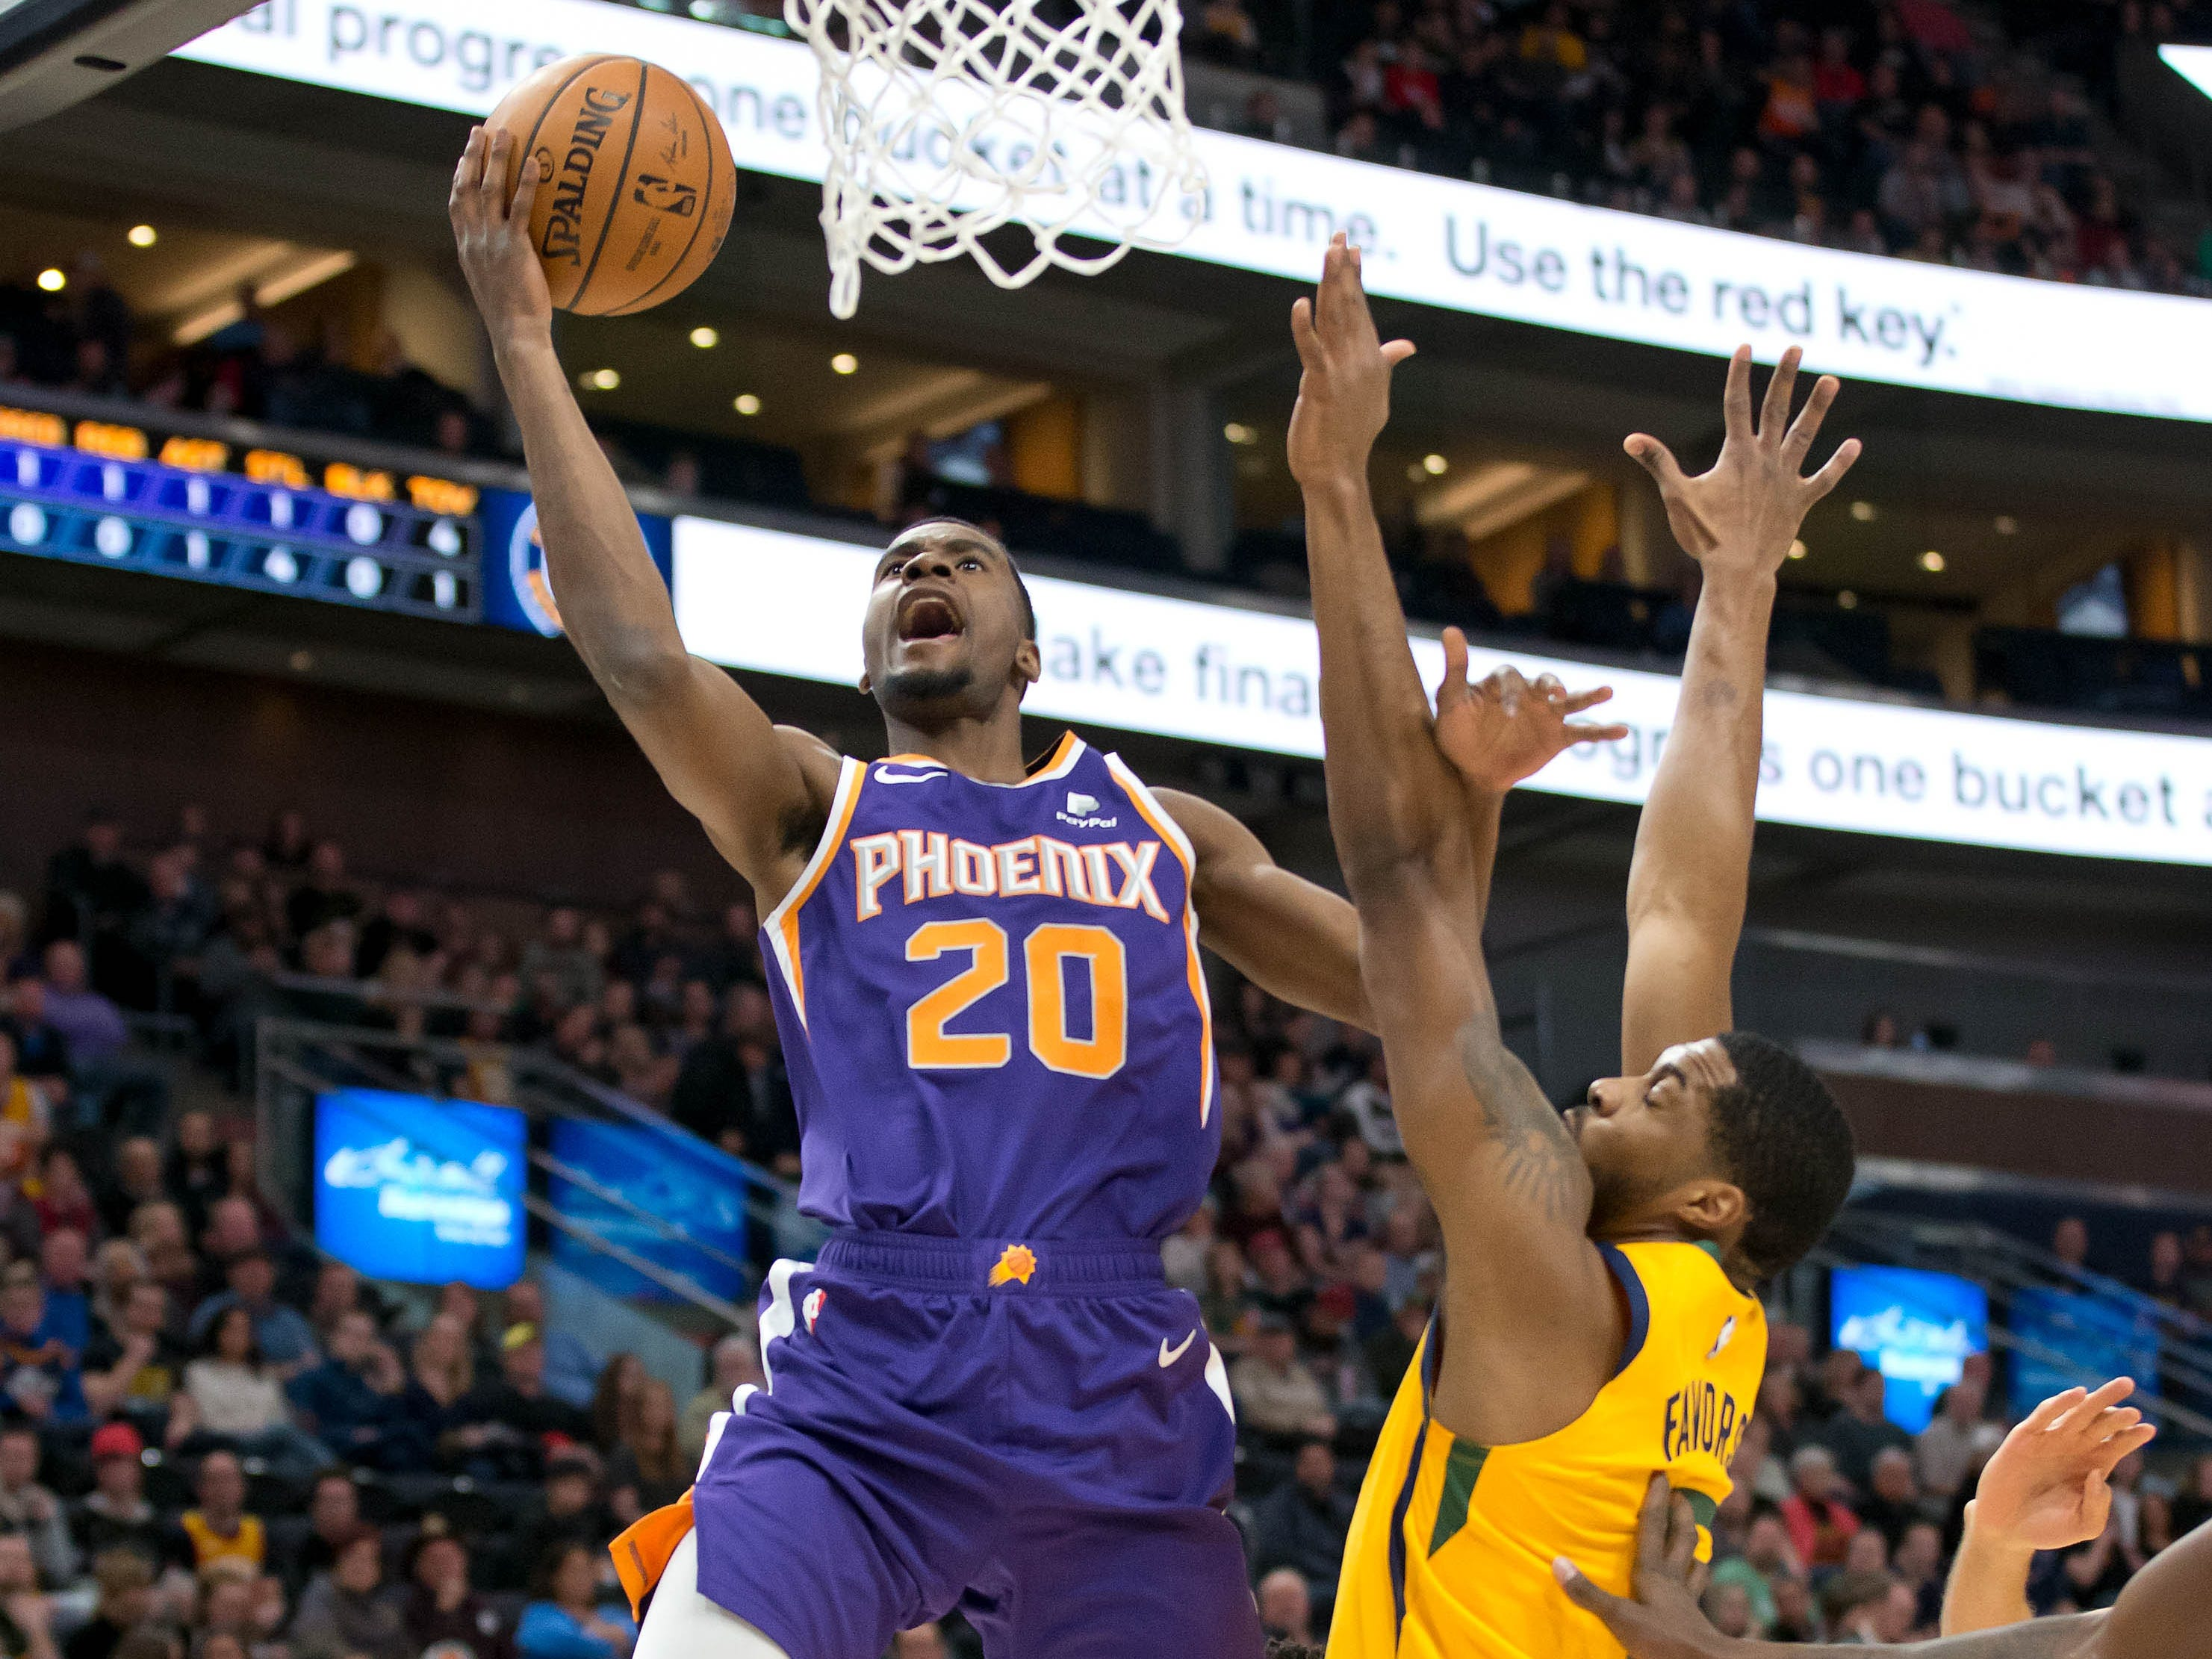 Feb 6, 2019; Salt Lake City, UT, USA; Phoenix Suns forward Josh Jackson (20) shoots the ball against Utah Jazz forward Derrick Favors (15) during the first quarter at Vivint Smart Home Arena. Mandatory Credit: Russ Isabella-USA TODAY Sports